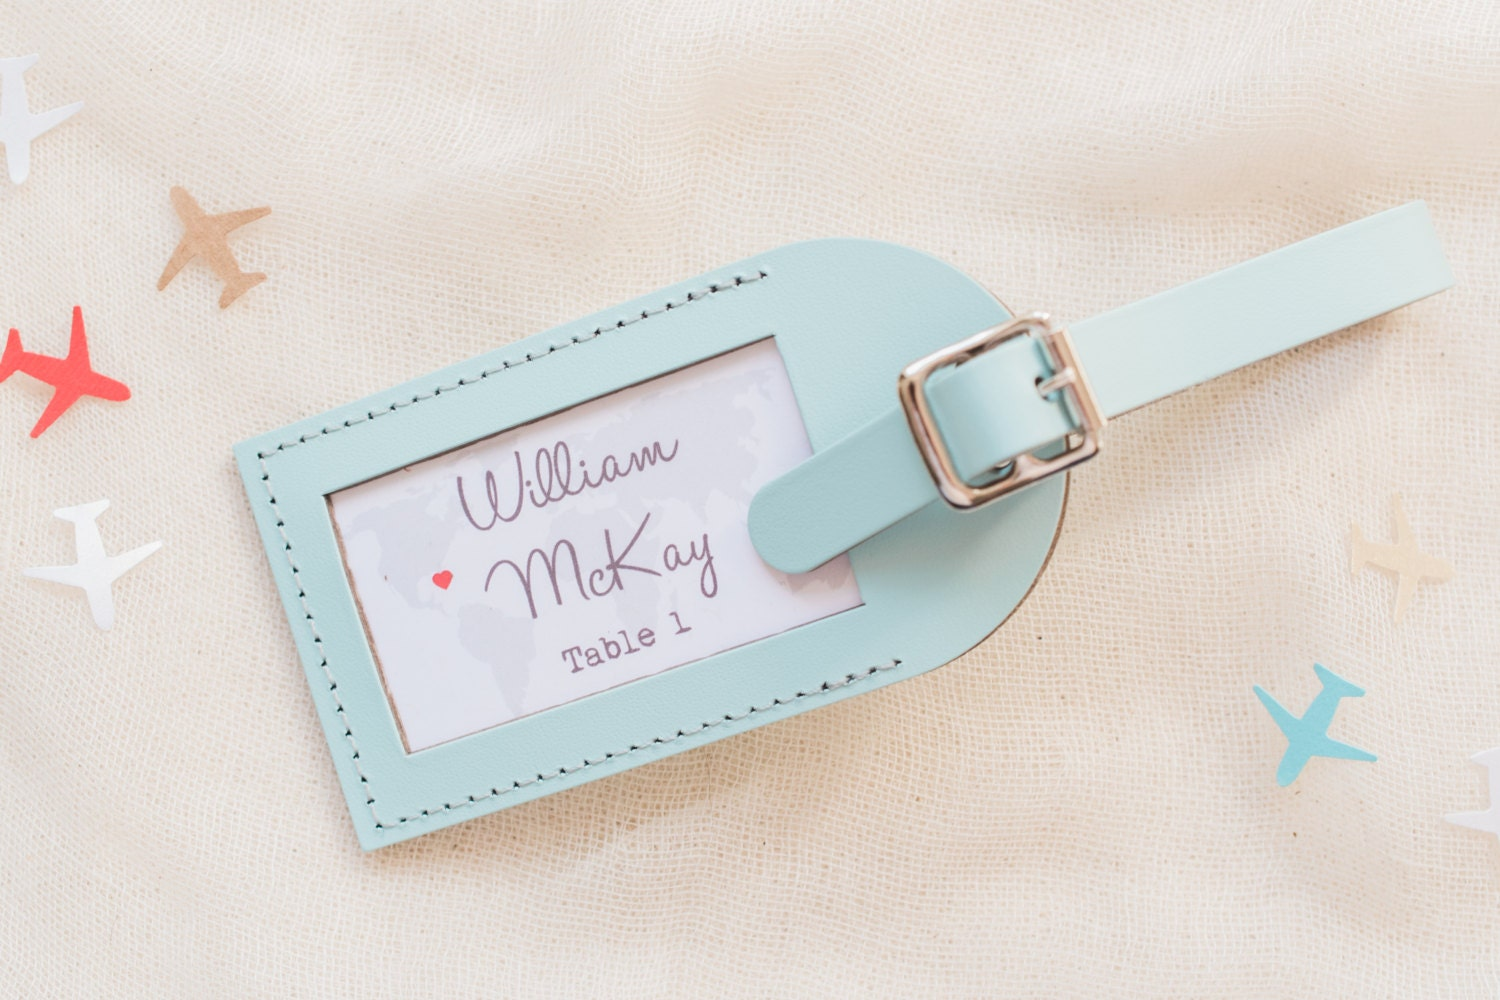 Wedding Favor Luggage Tags Leather : Wedding Favors Find Your Seat Escort Card Leather Luggage